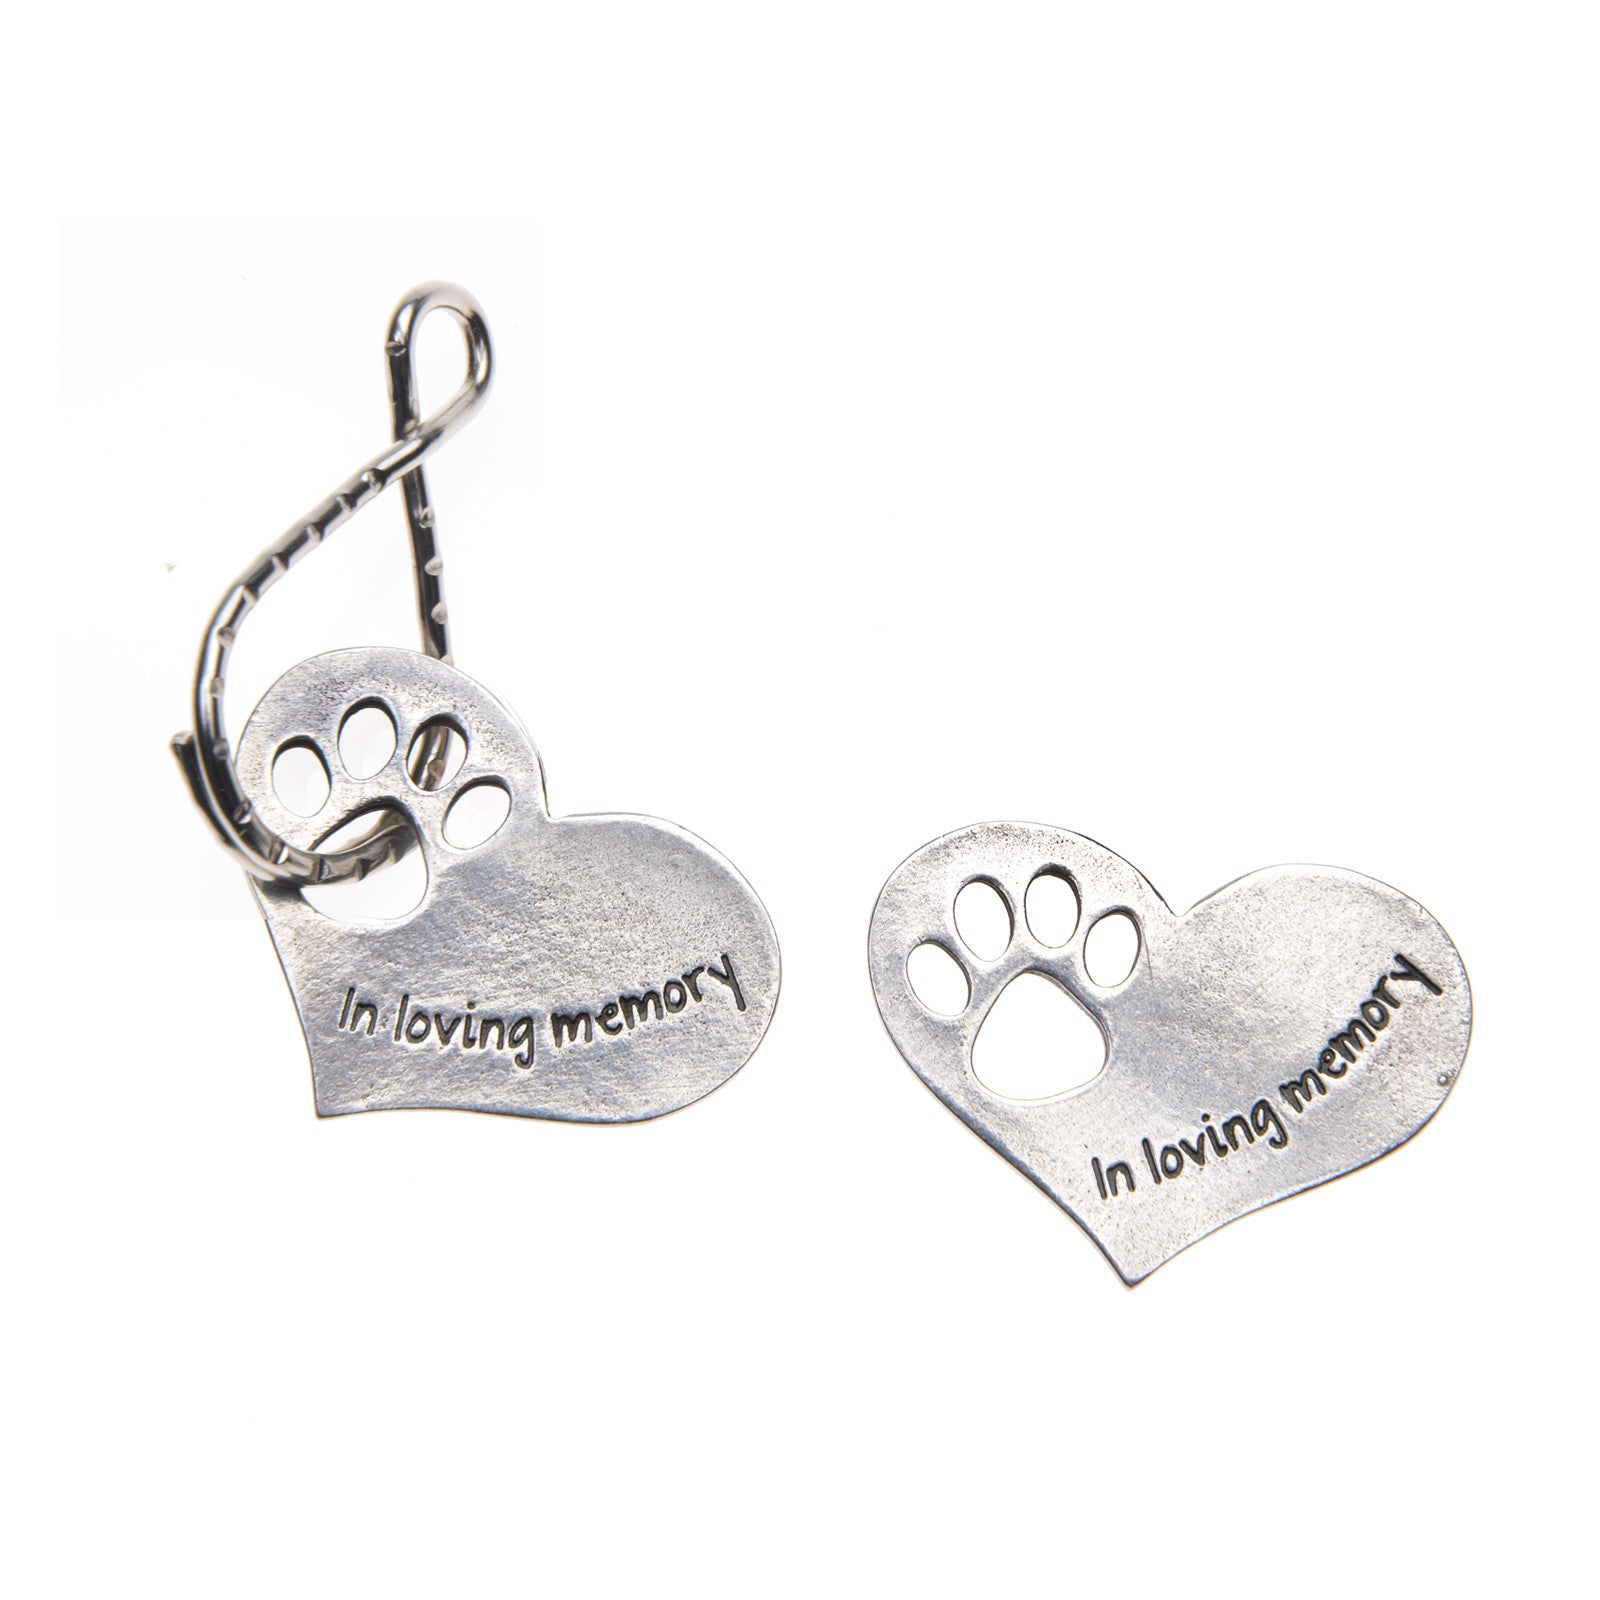 PET MEMORIAL HEART KEY RING - Whitney Howard Designs